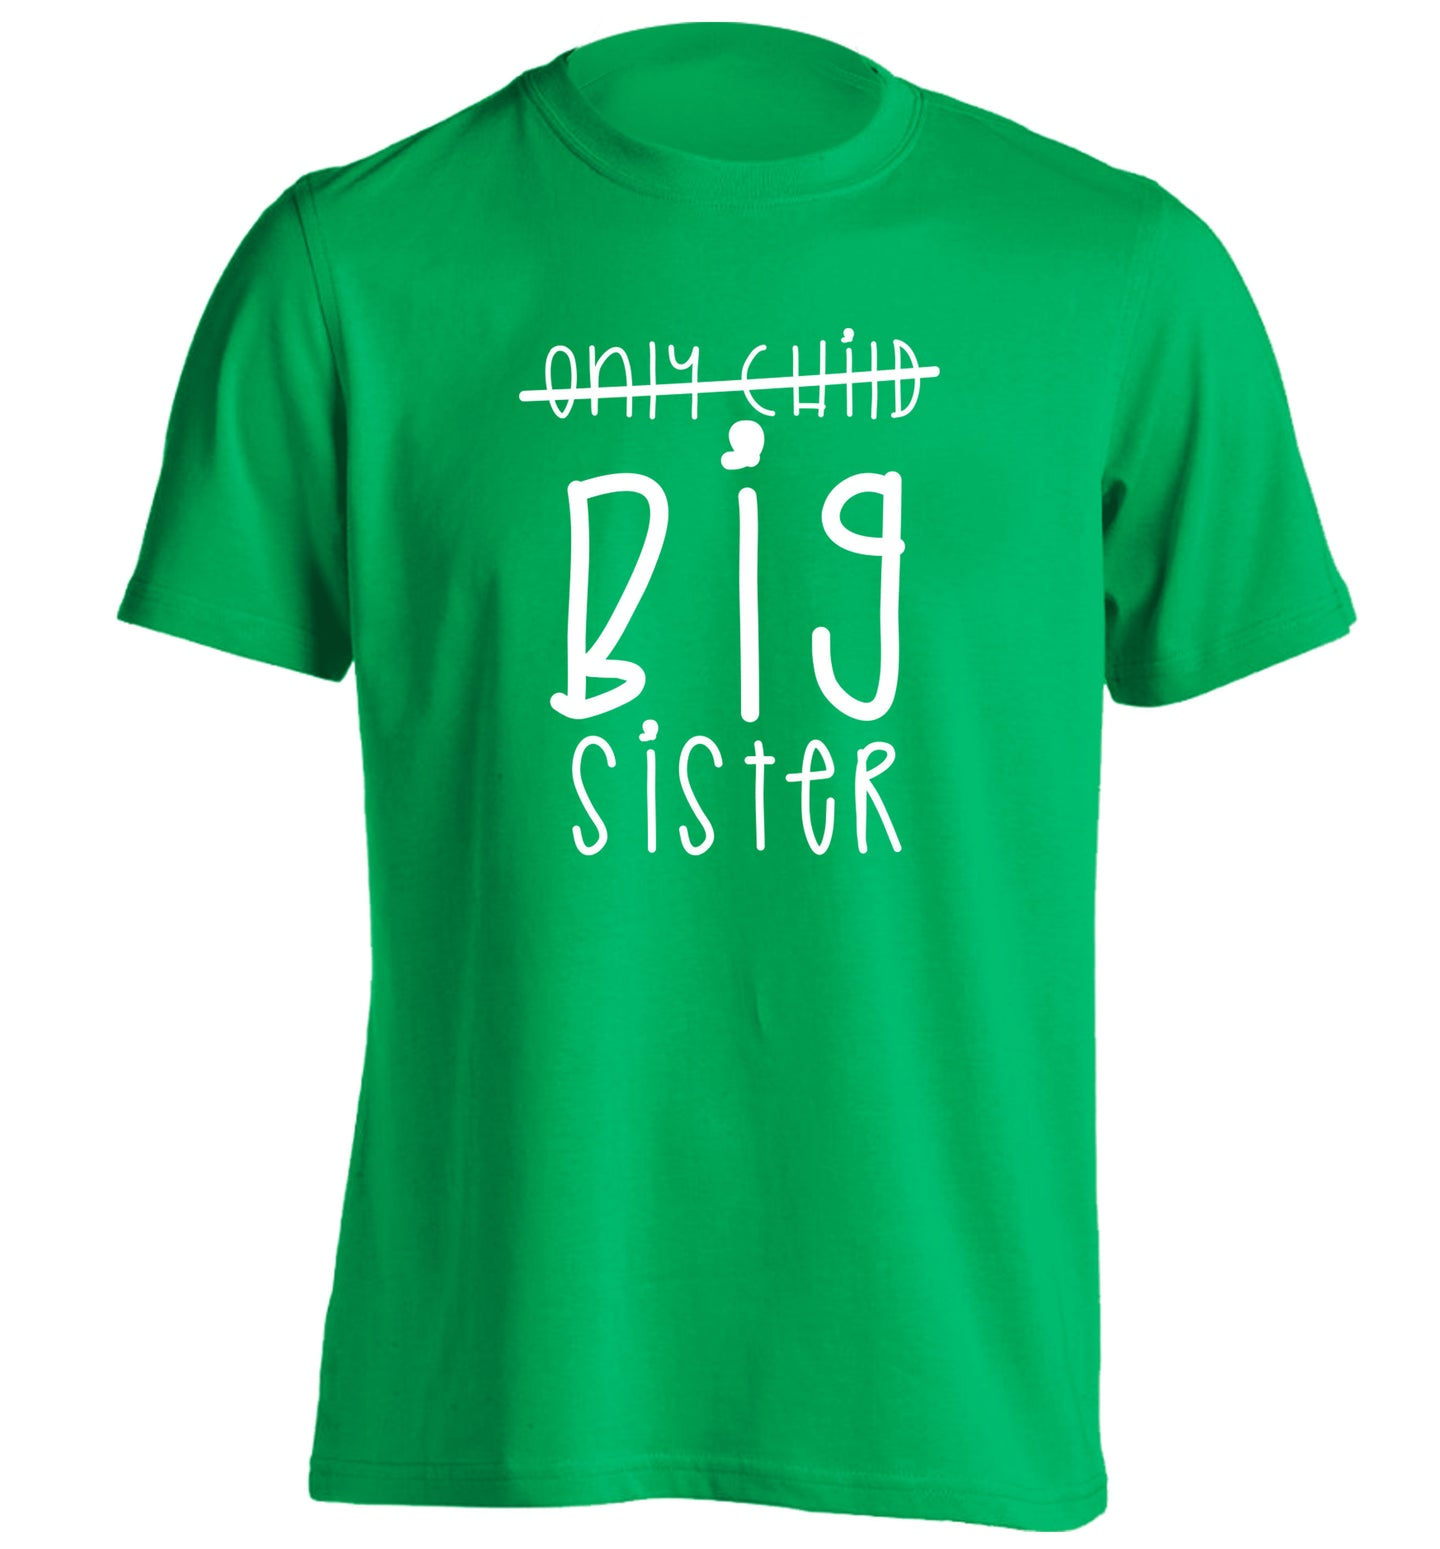 Only child big sister adults unisex green Tshirt 2XL